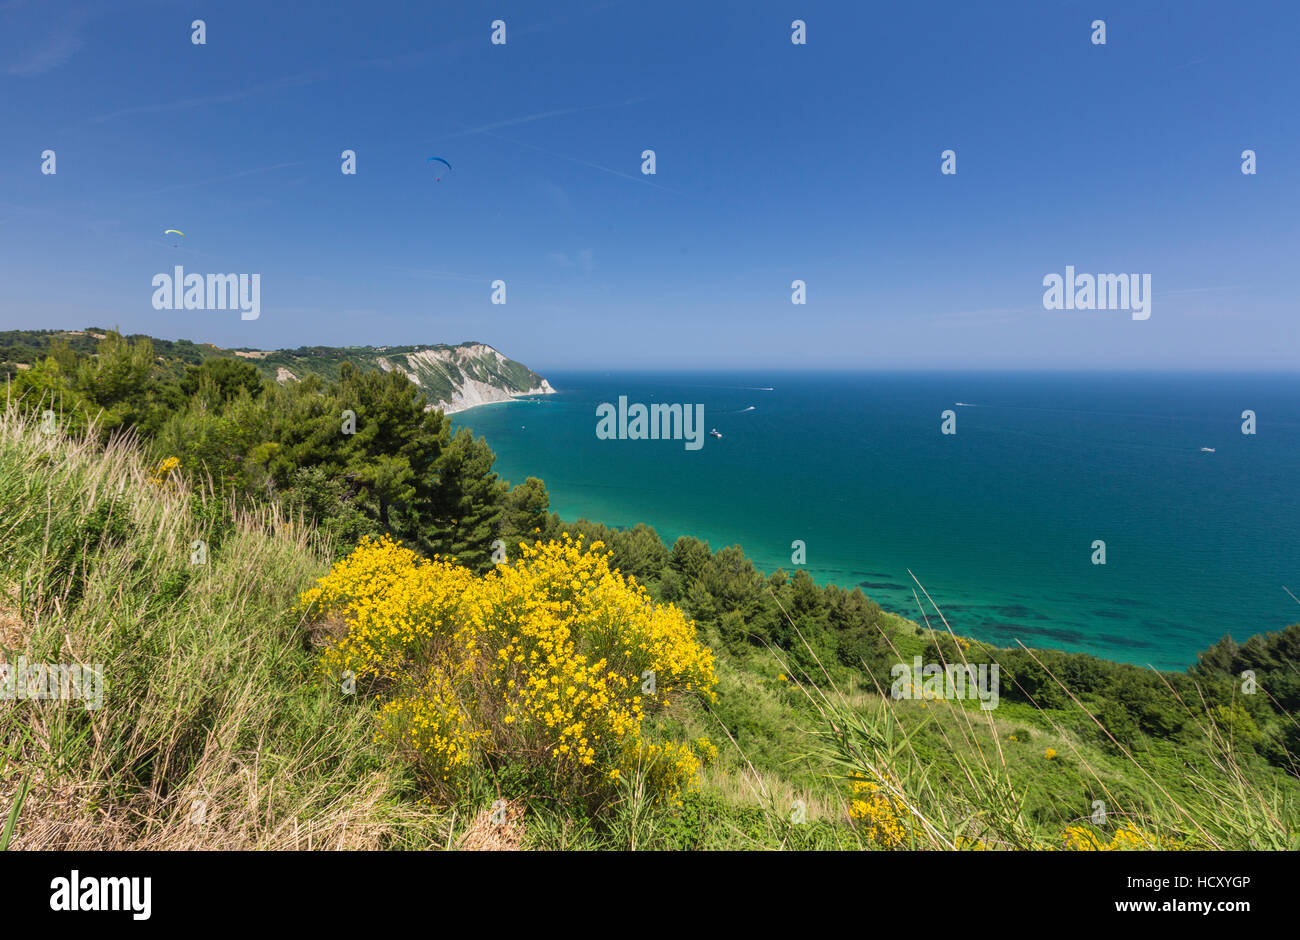 Yellow flowers on the promontory overlooking the turquoise sea, Province of Ancona, Conero Riviera, Marche, Italy - Stock Image